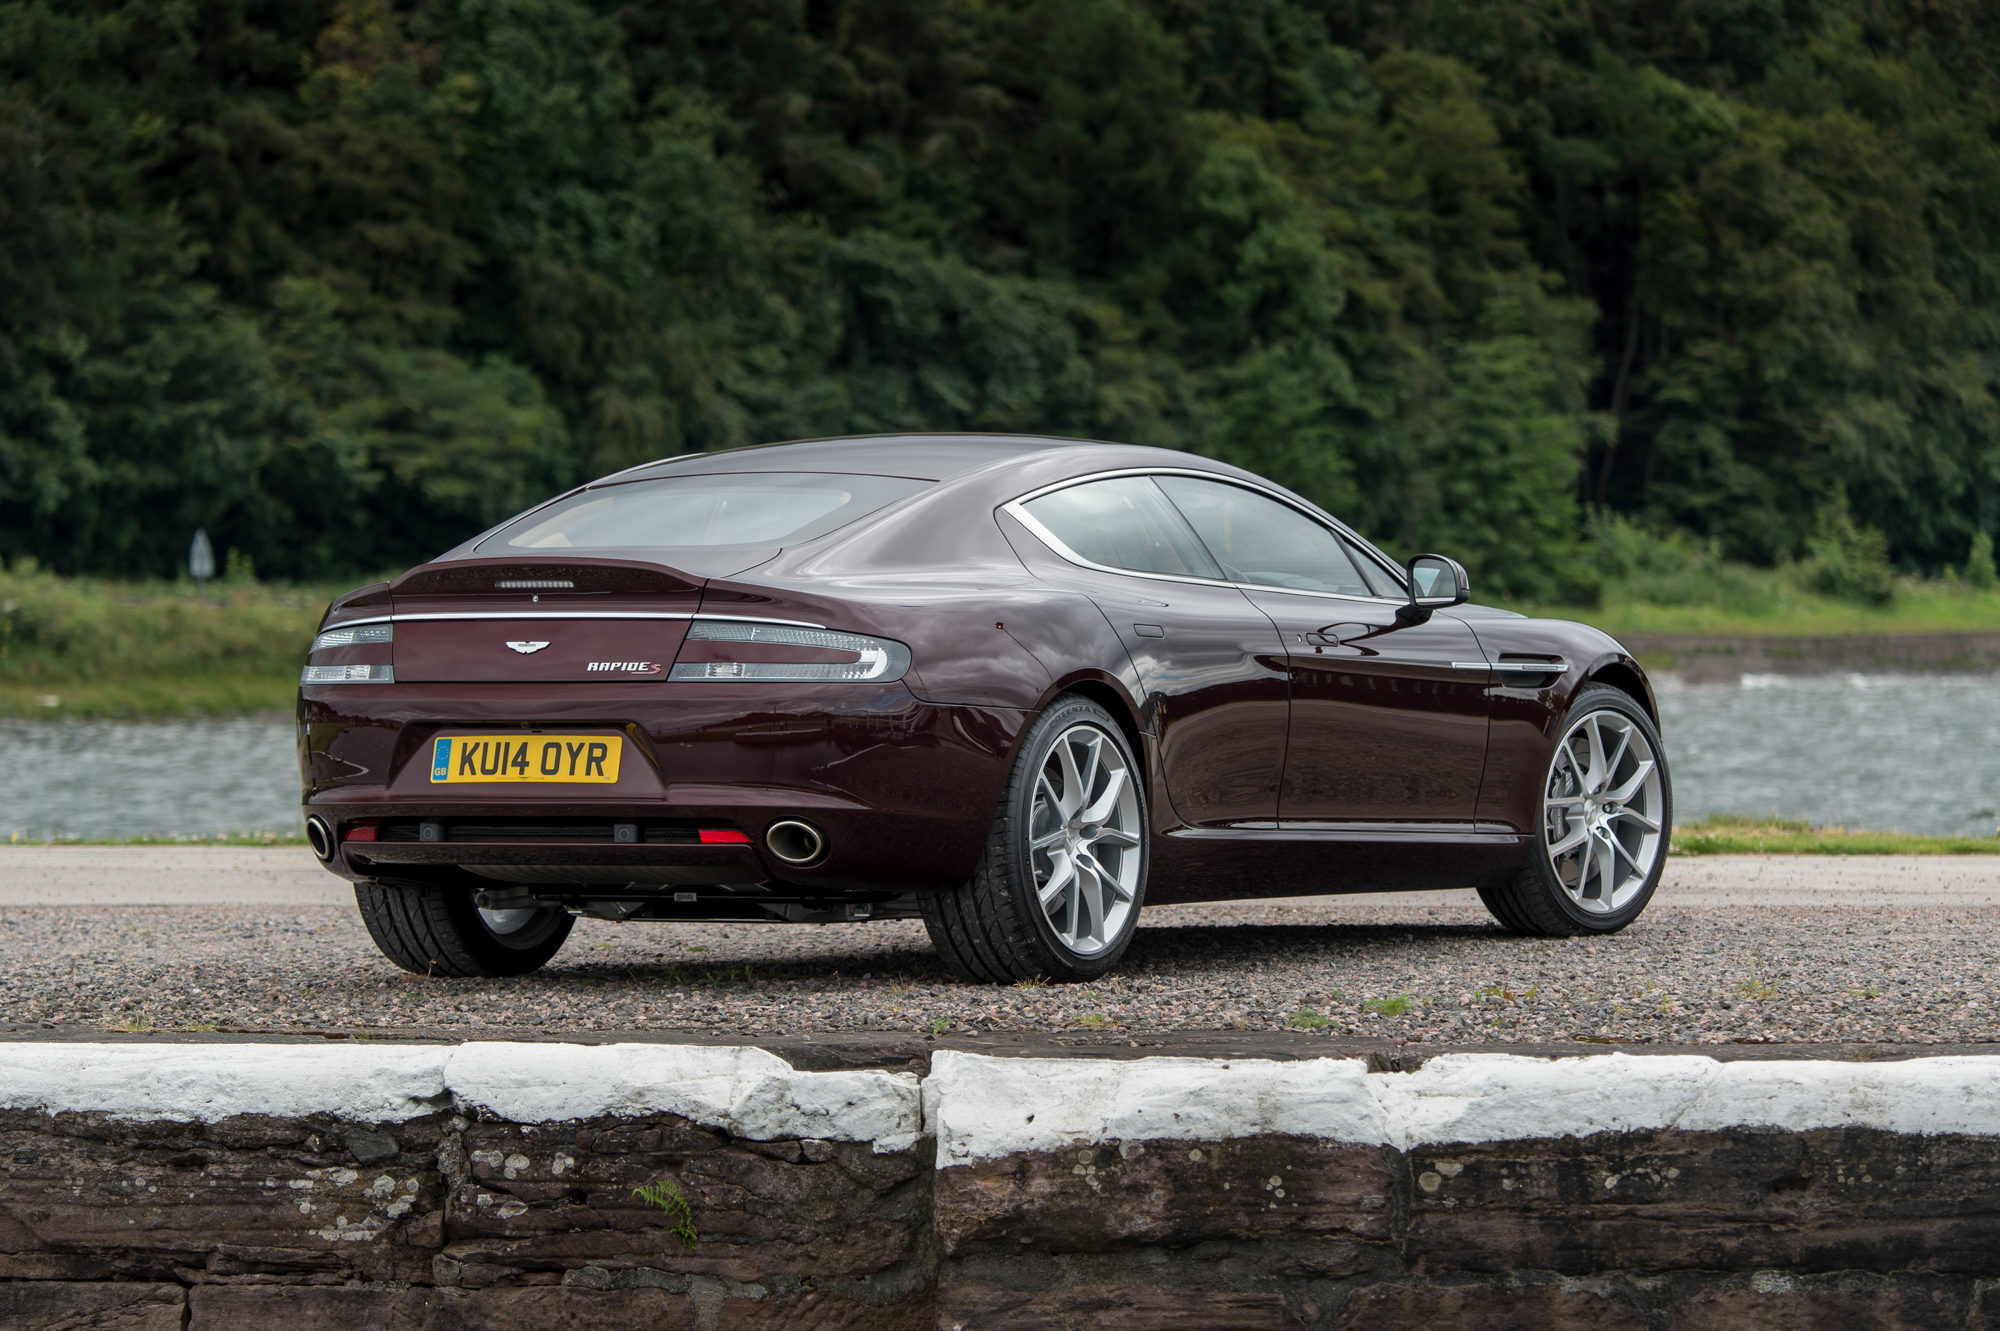 Aston Martin To Replace Rapide With New Lagonda Sedan, Launch DBX